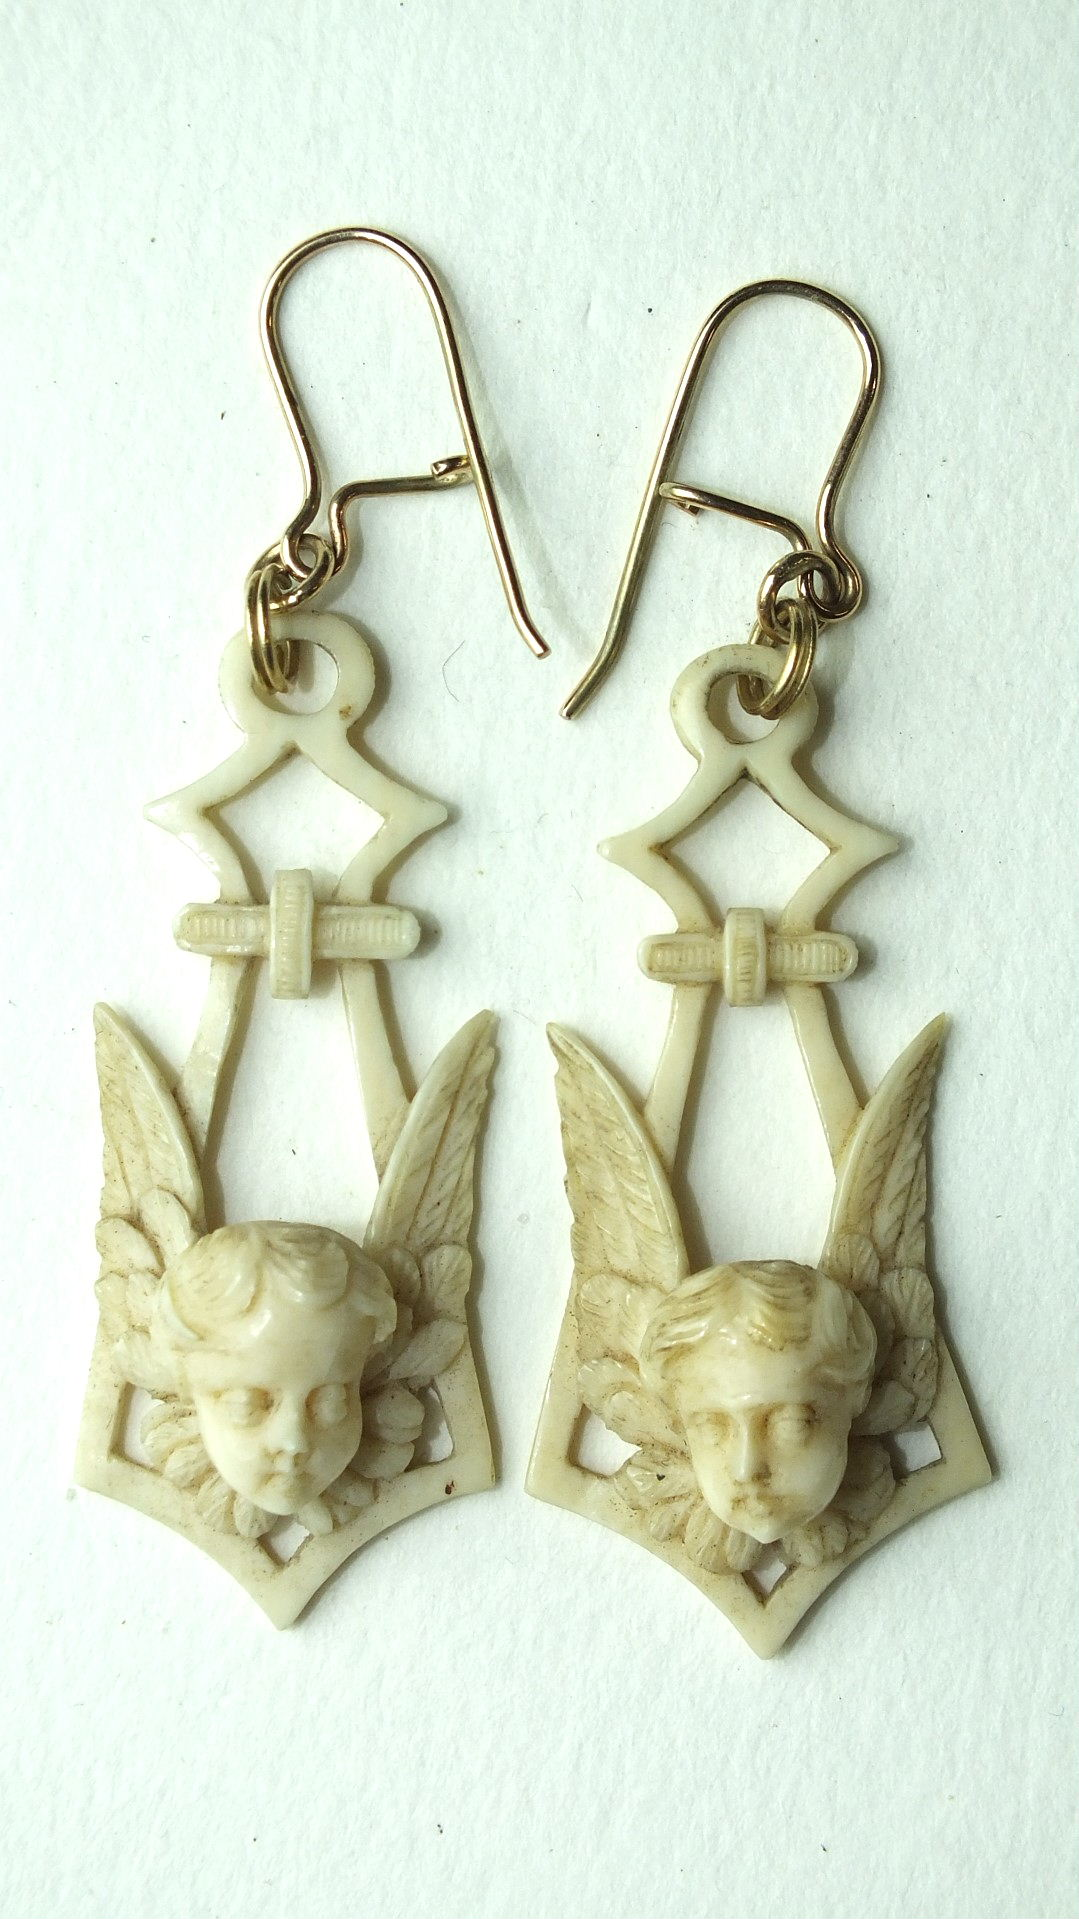 Lot 149 - A pair of Victorian ivory pendant earrings carved in the form of cherubs' heads and wings, later